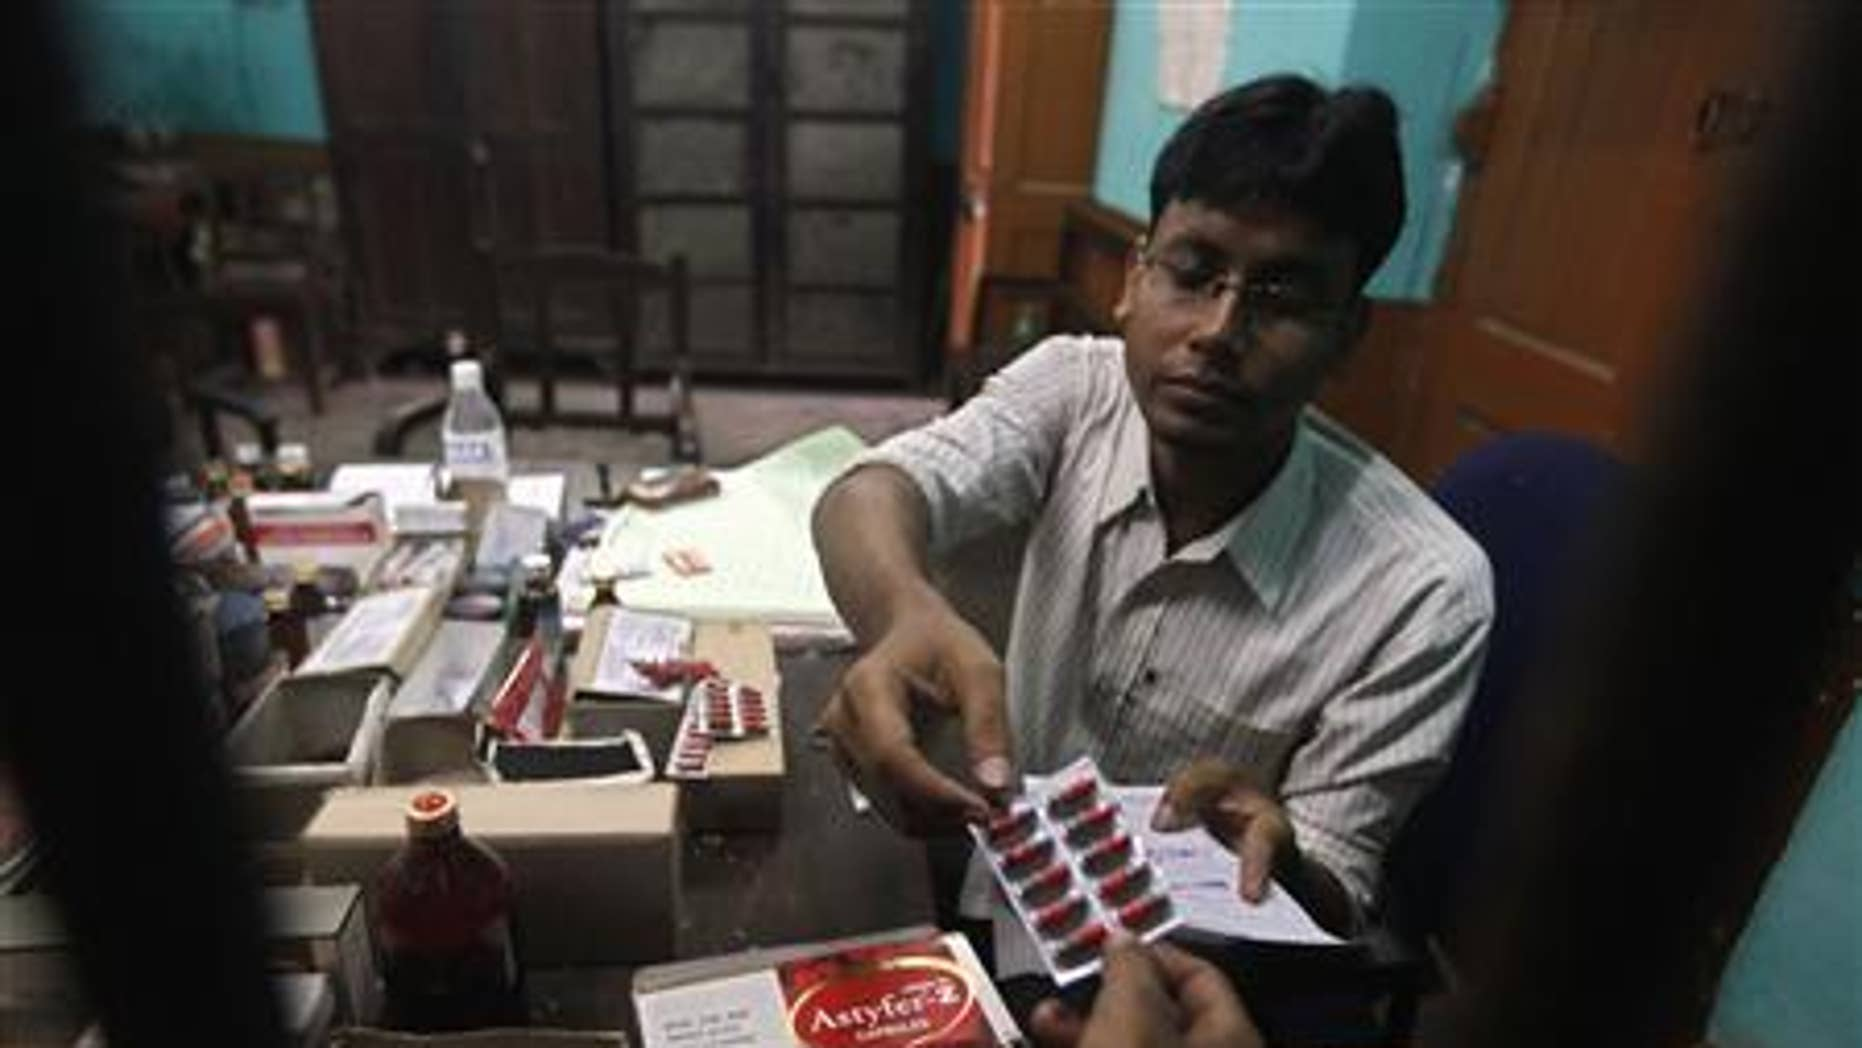 A pharmacist gives free medicine provided by the government, to a patient inside a government hospital in Kolkata July 3, 2012.